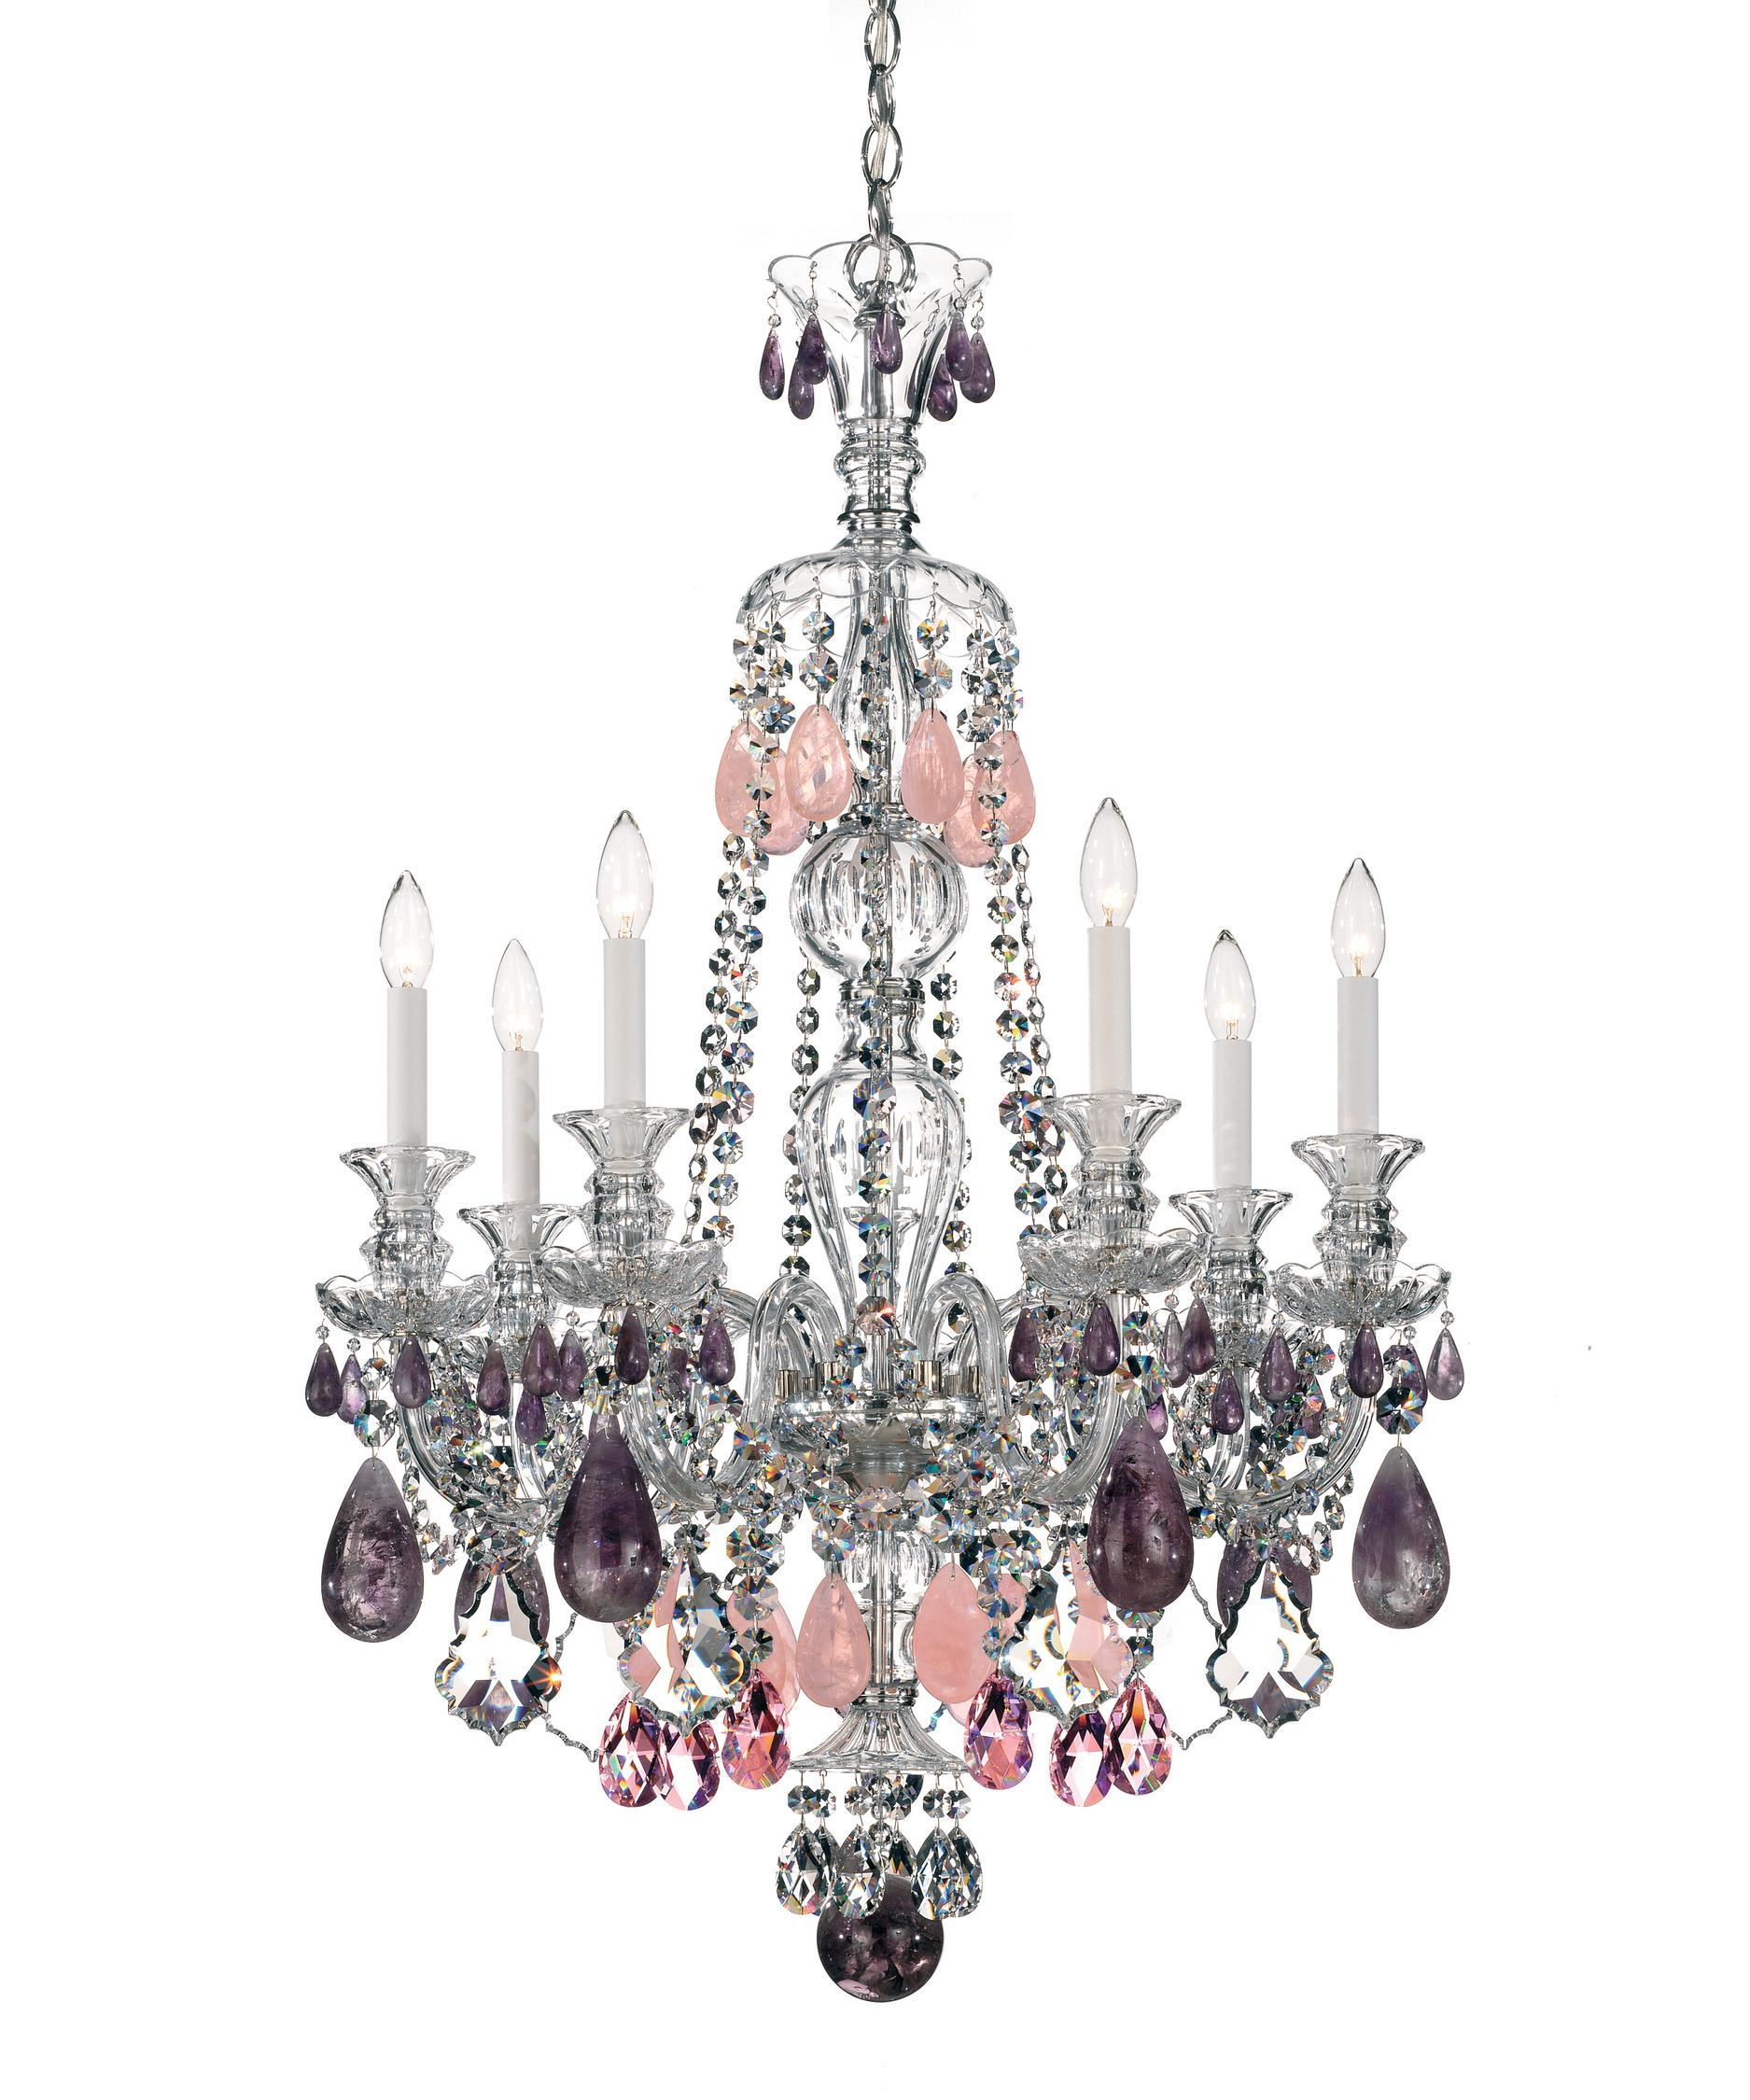 shown in silver finish and amethyst rock crystal crystal - Schonbek Chandelier